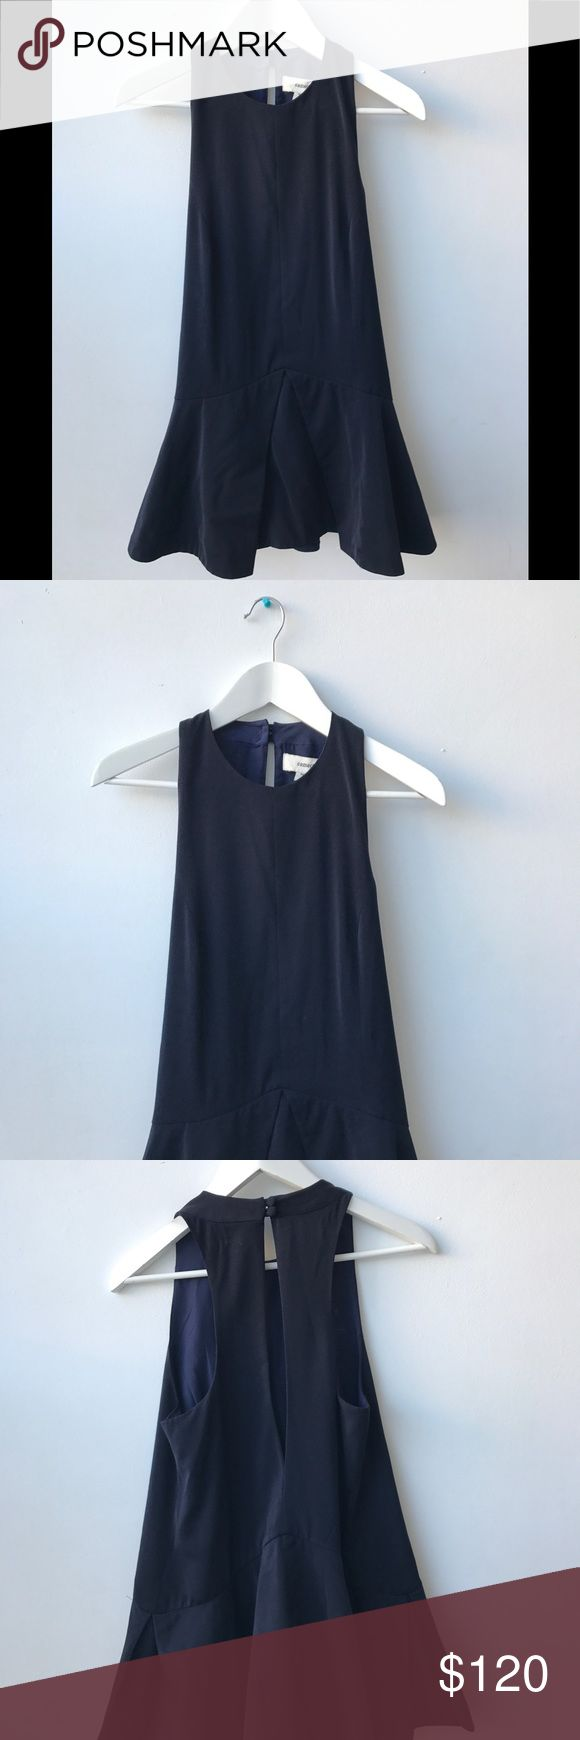 Midnight Blue Cameo Dress Navy Blue party dress from C/MEO. Pleated skirt. Material: 97% Polyester, 3% Elastane C/MEO Collective Dresses Midi